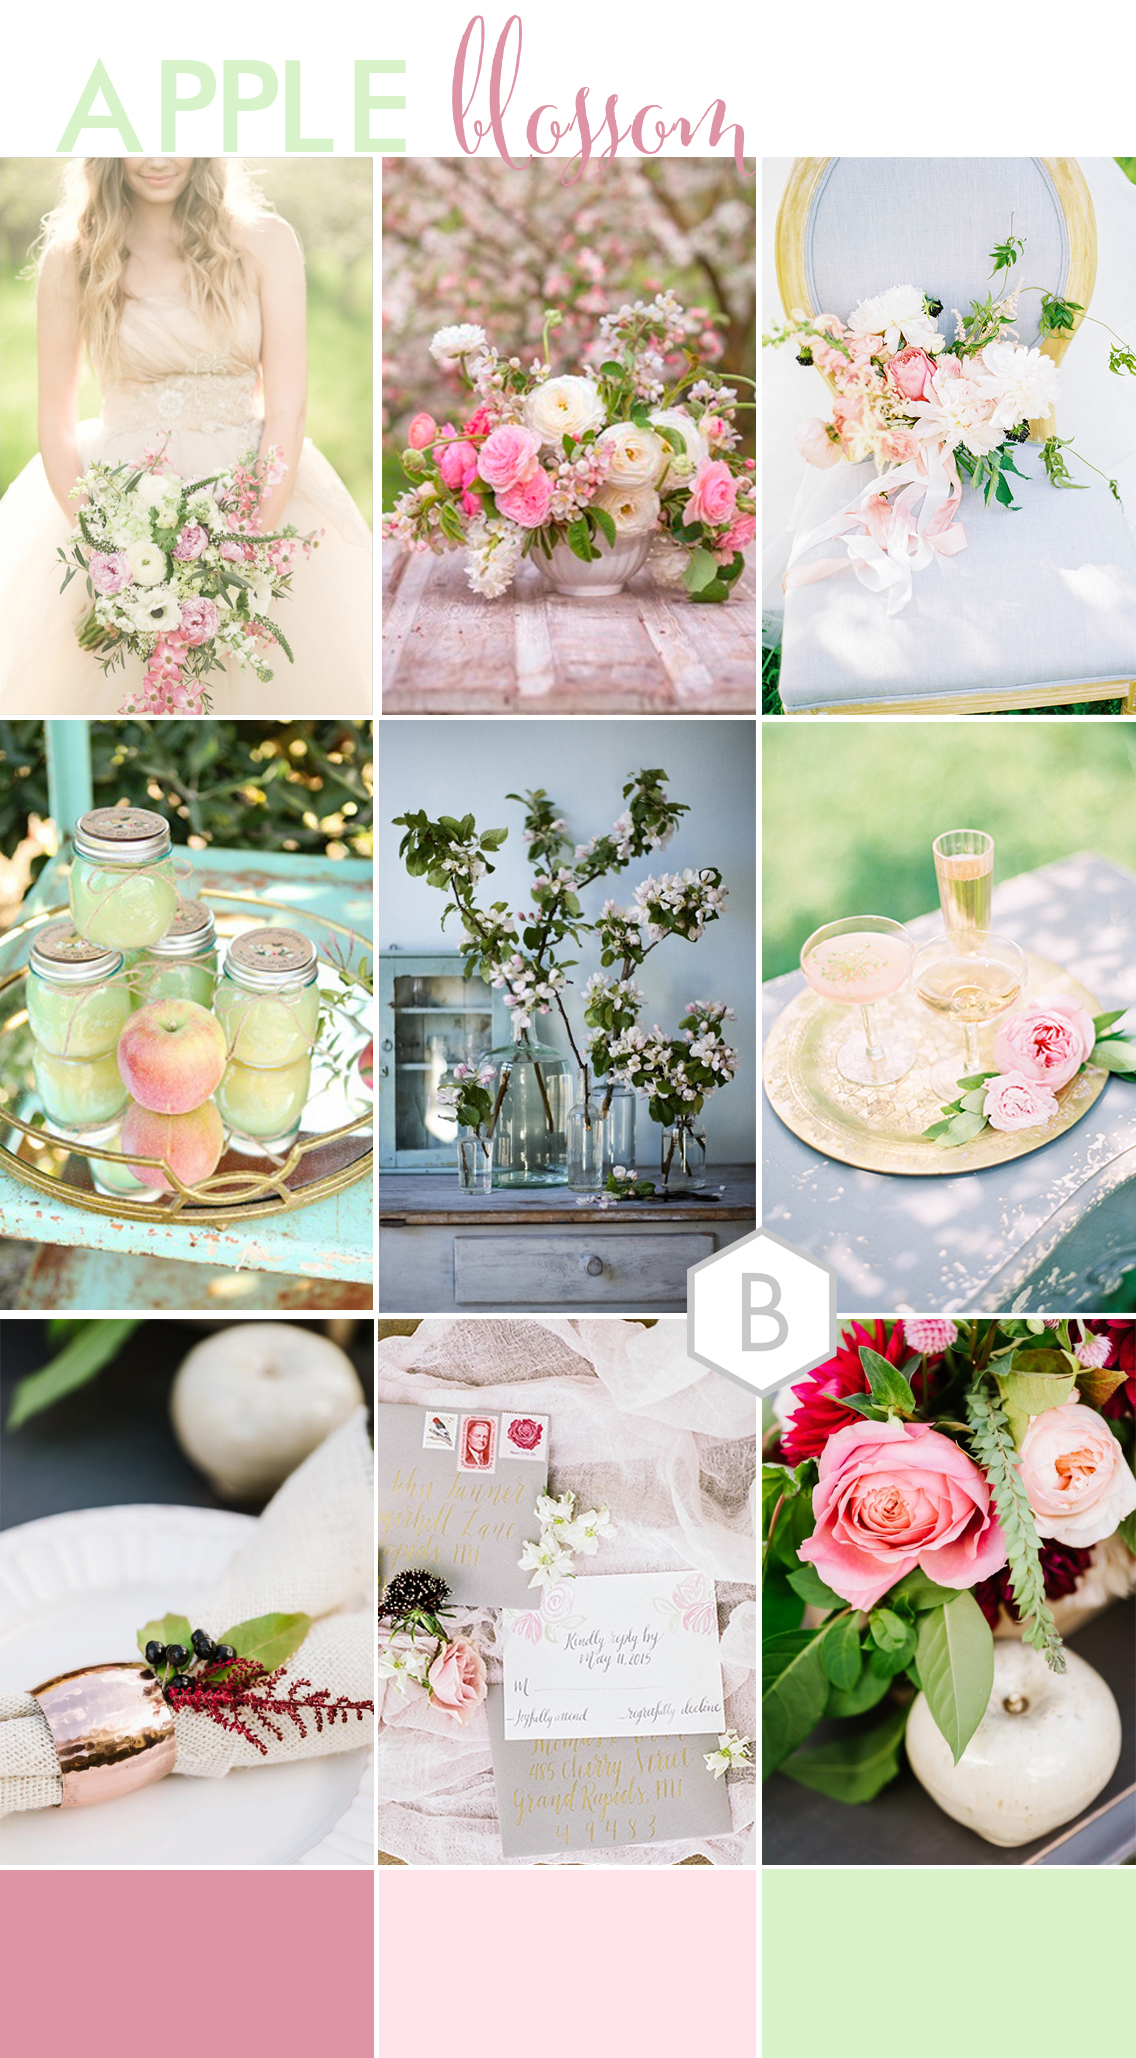 bloved-luxury-wedding-blog-apple-blossom-wedding-inspiration